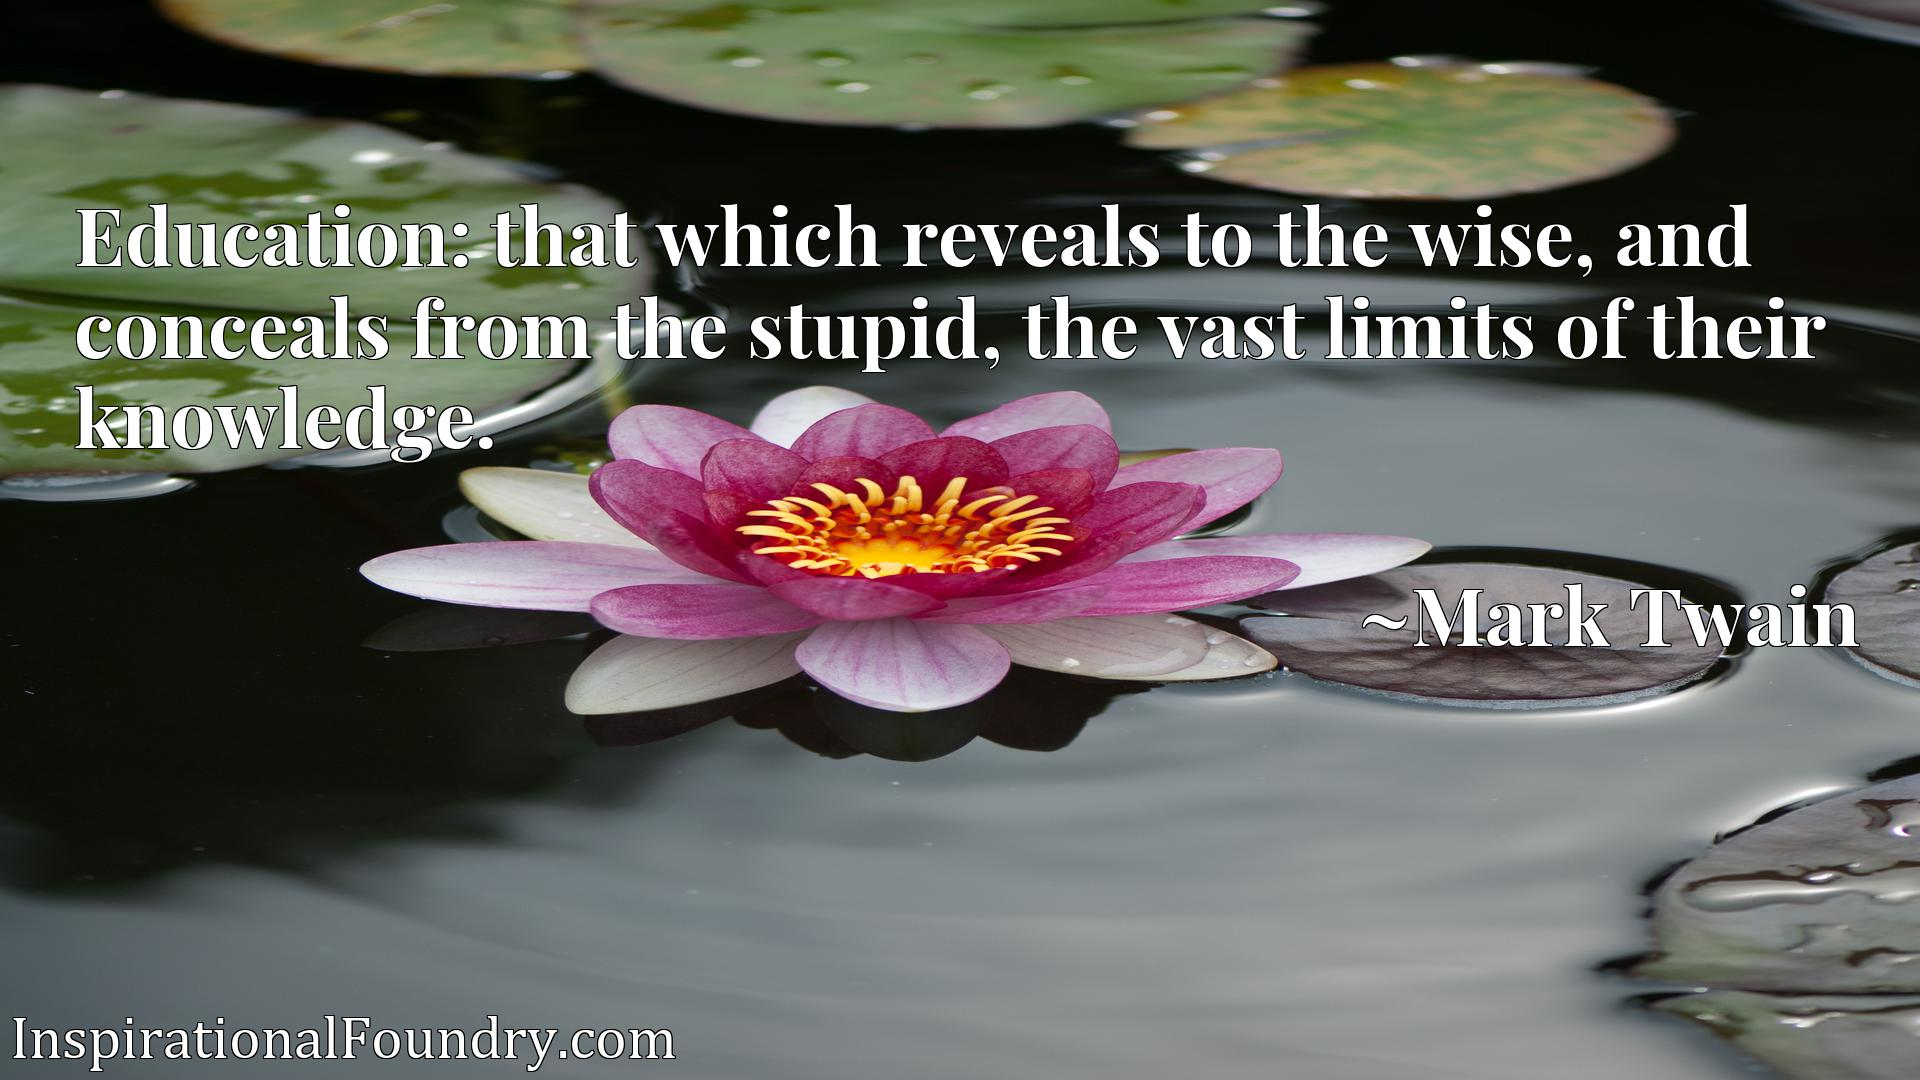 Education: that which reveals to the wise, and conceals from the stupid, the vast limits of their knowledge.